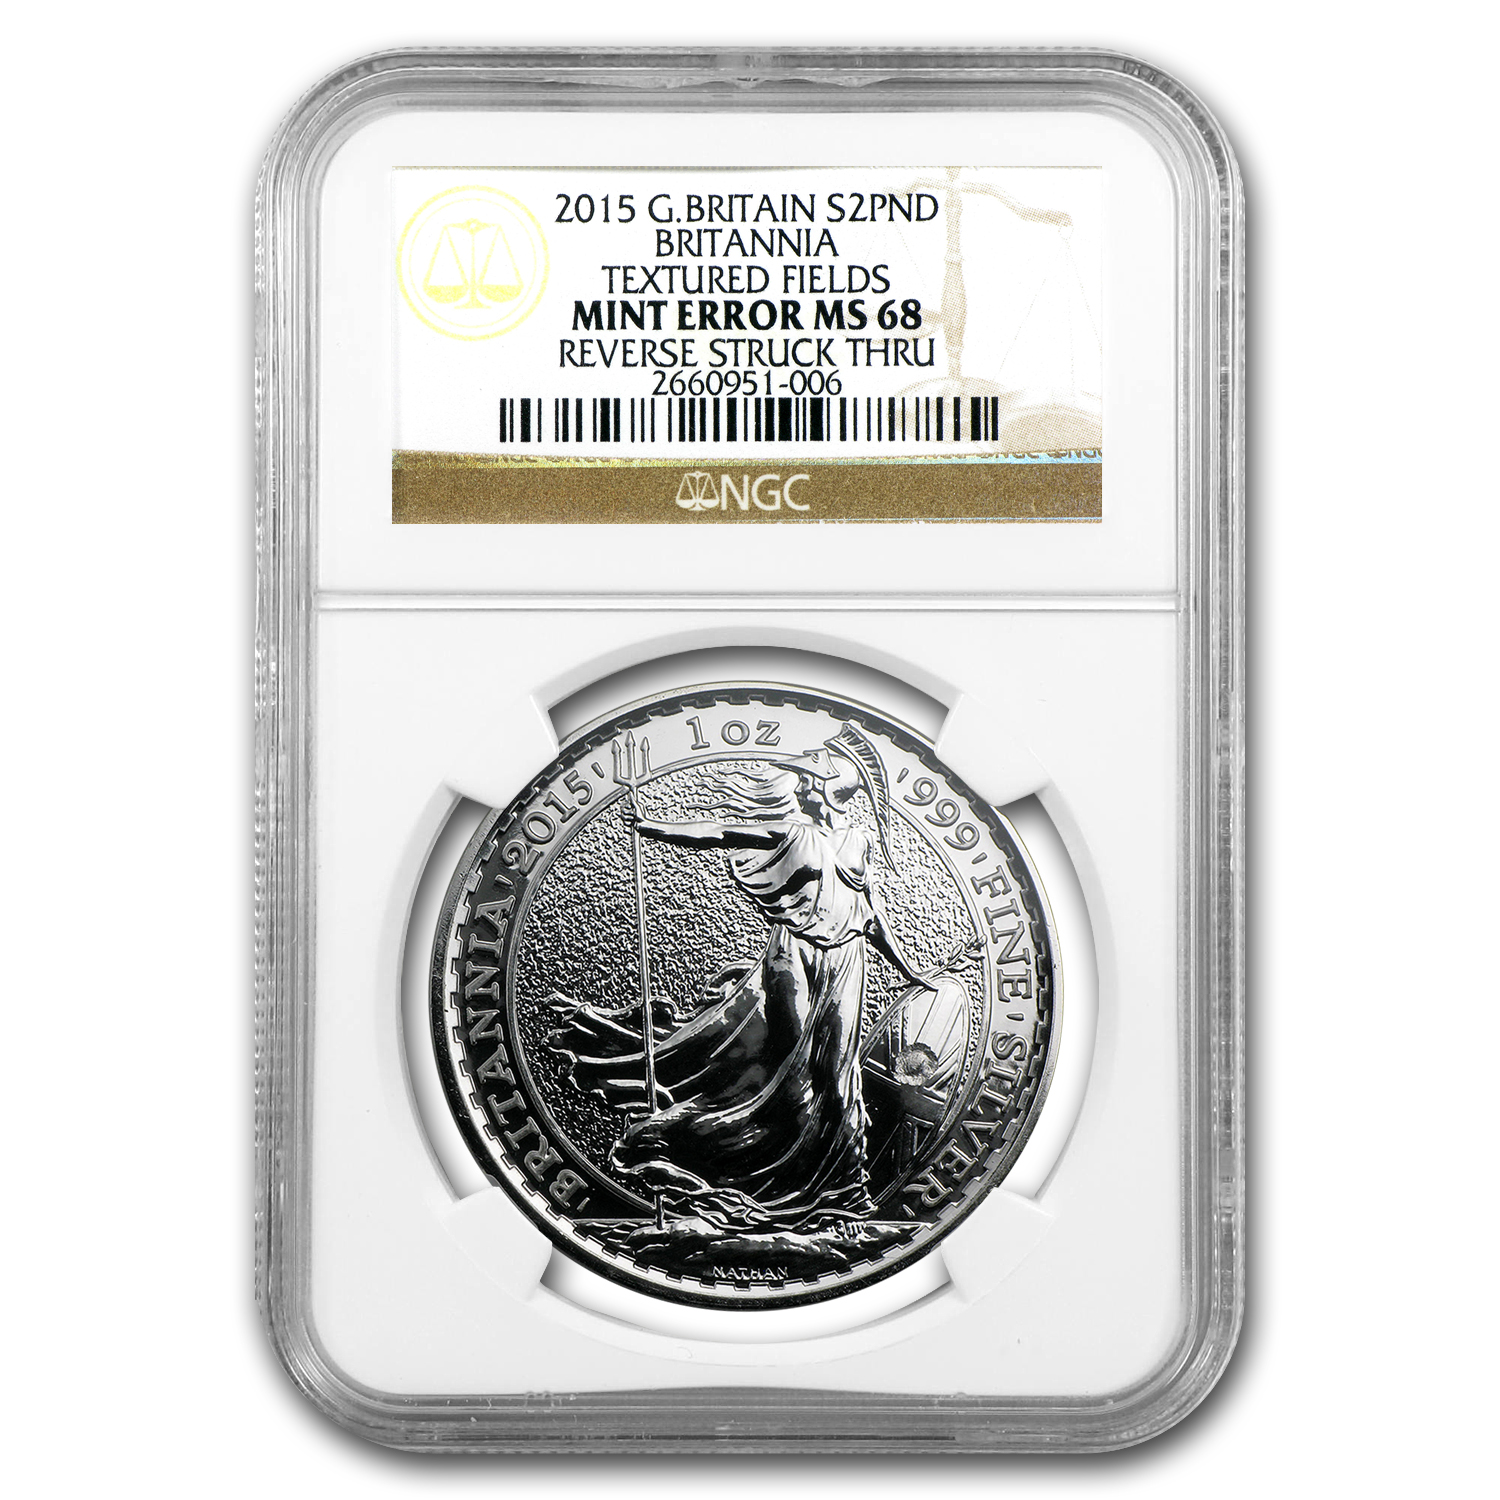 2015 1 oz Silver Britannia Rev Struck Thru MS-68 NGC (Mint Error)